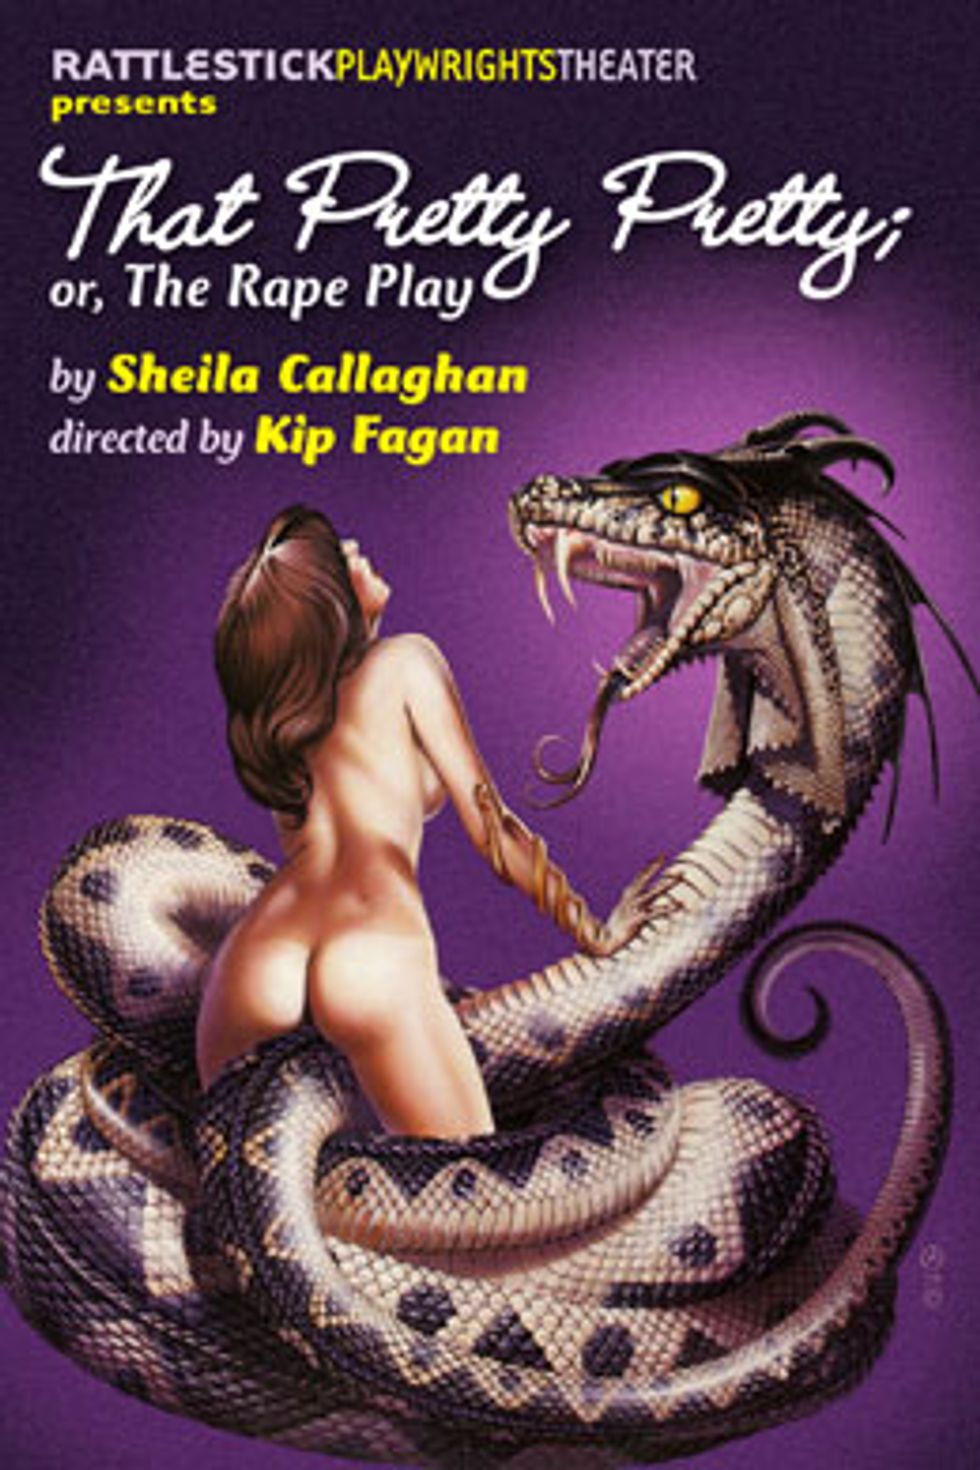 Stage Notes: That Pretty Pretty; Or, The Rape Play